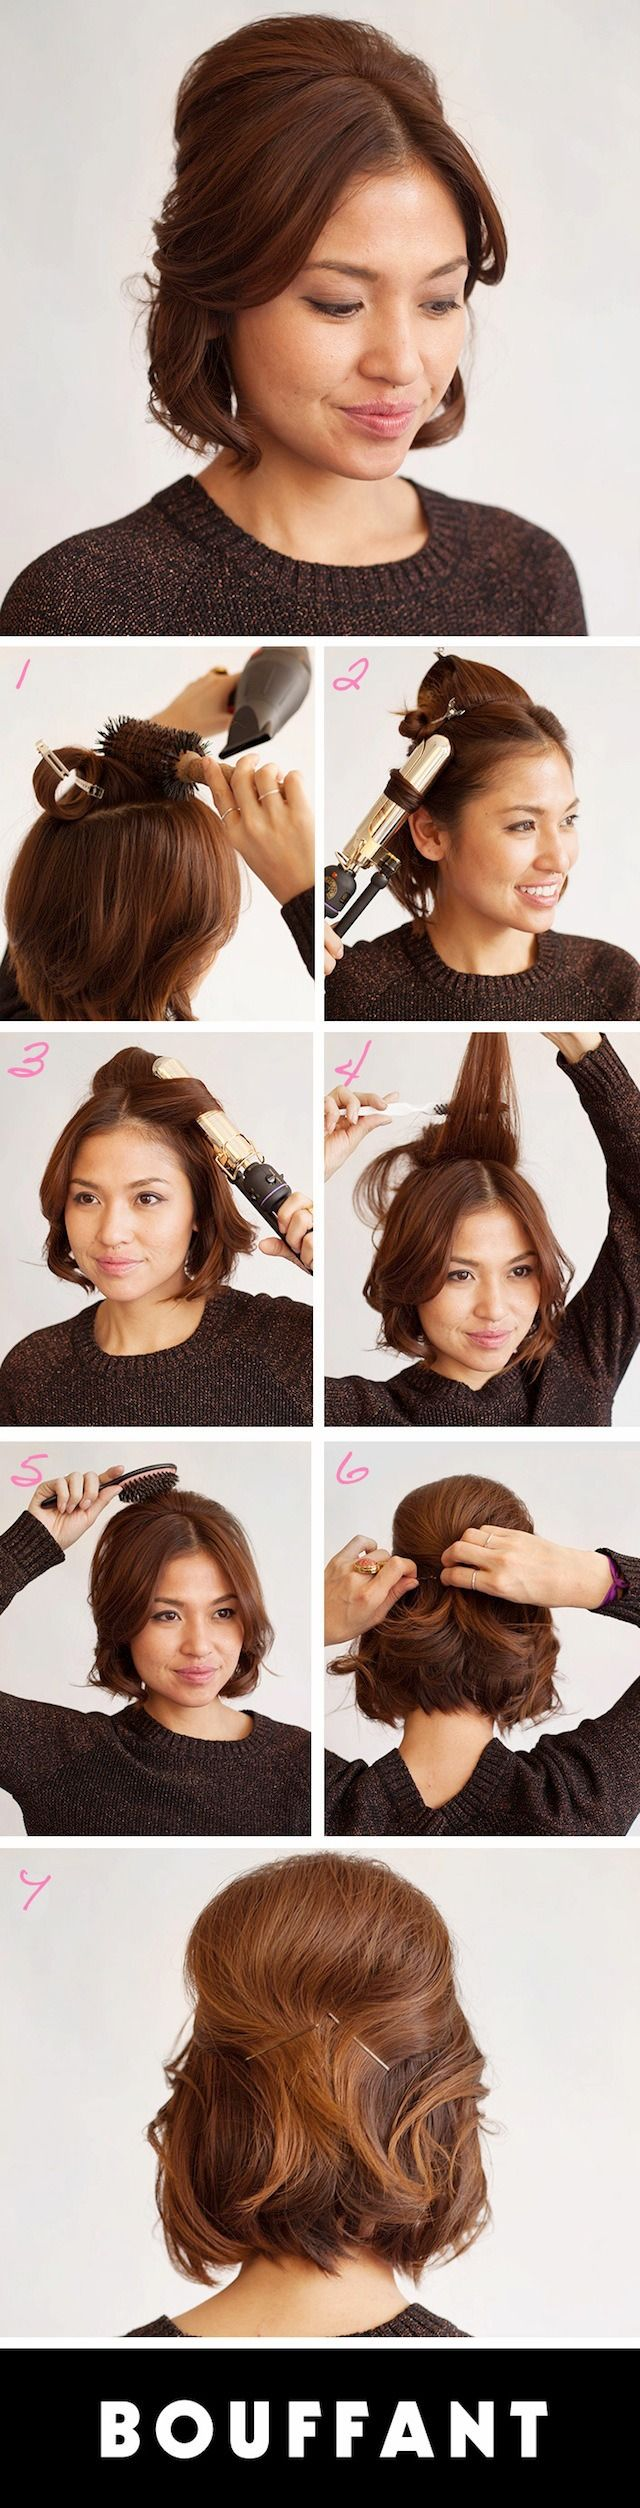 Get prom ready with me hair makeup dress - Prom Hairstyles How To Get The Perfect Retro Bouffant